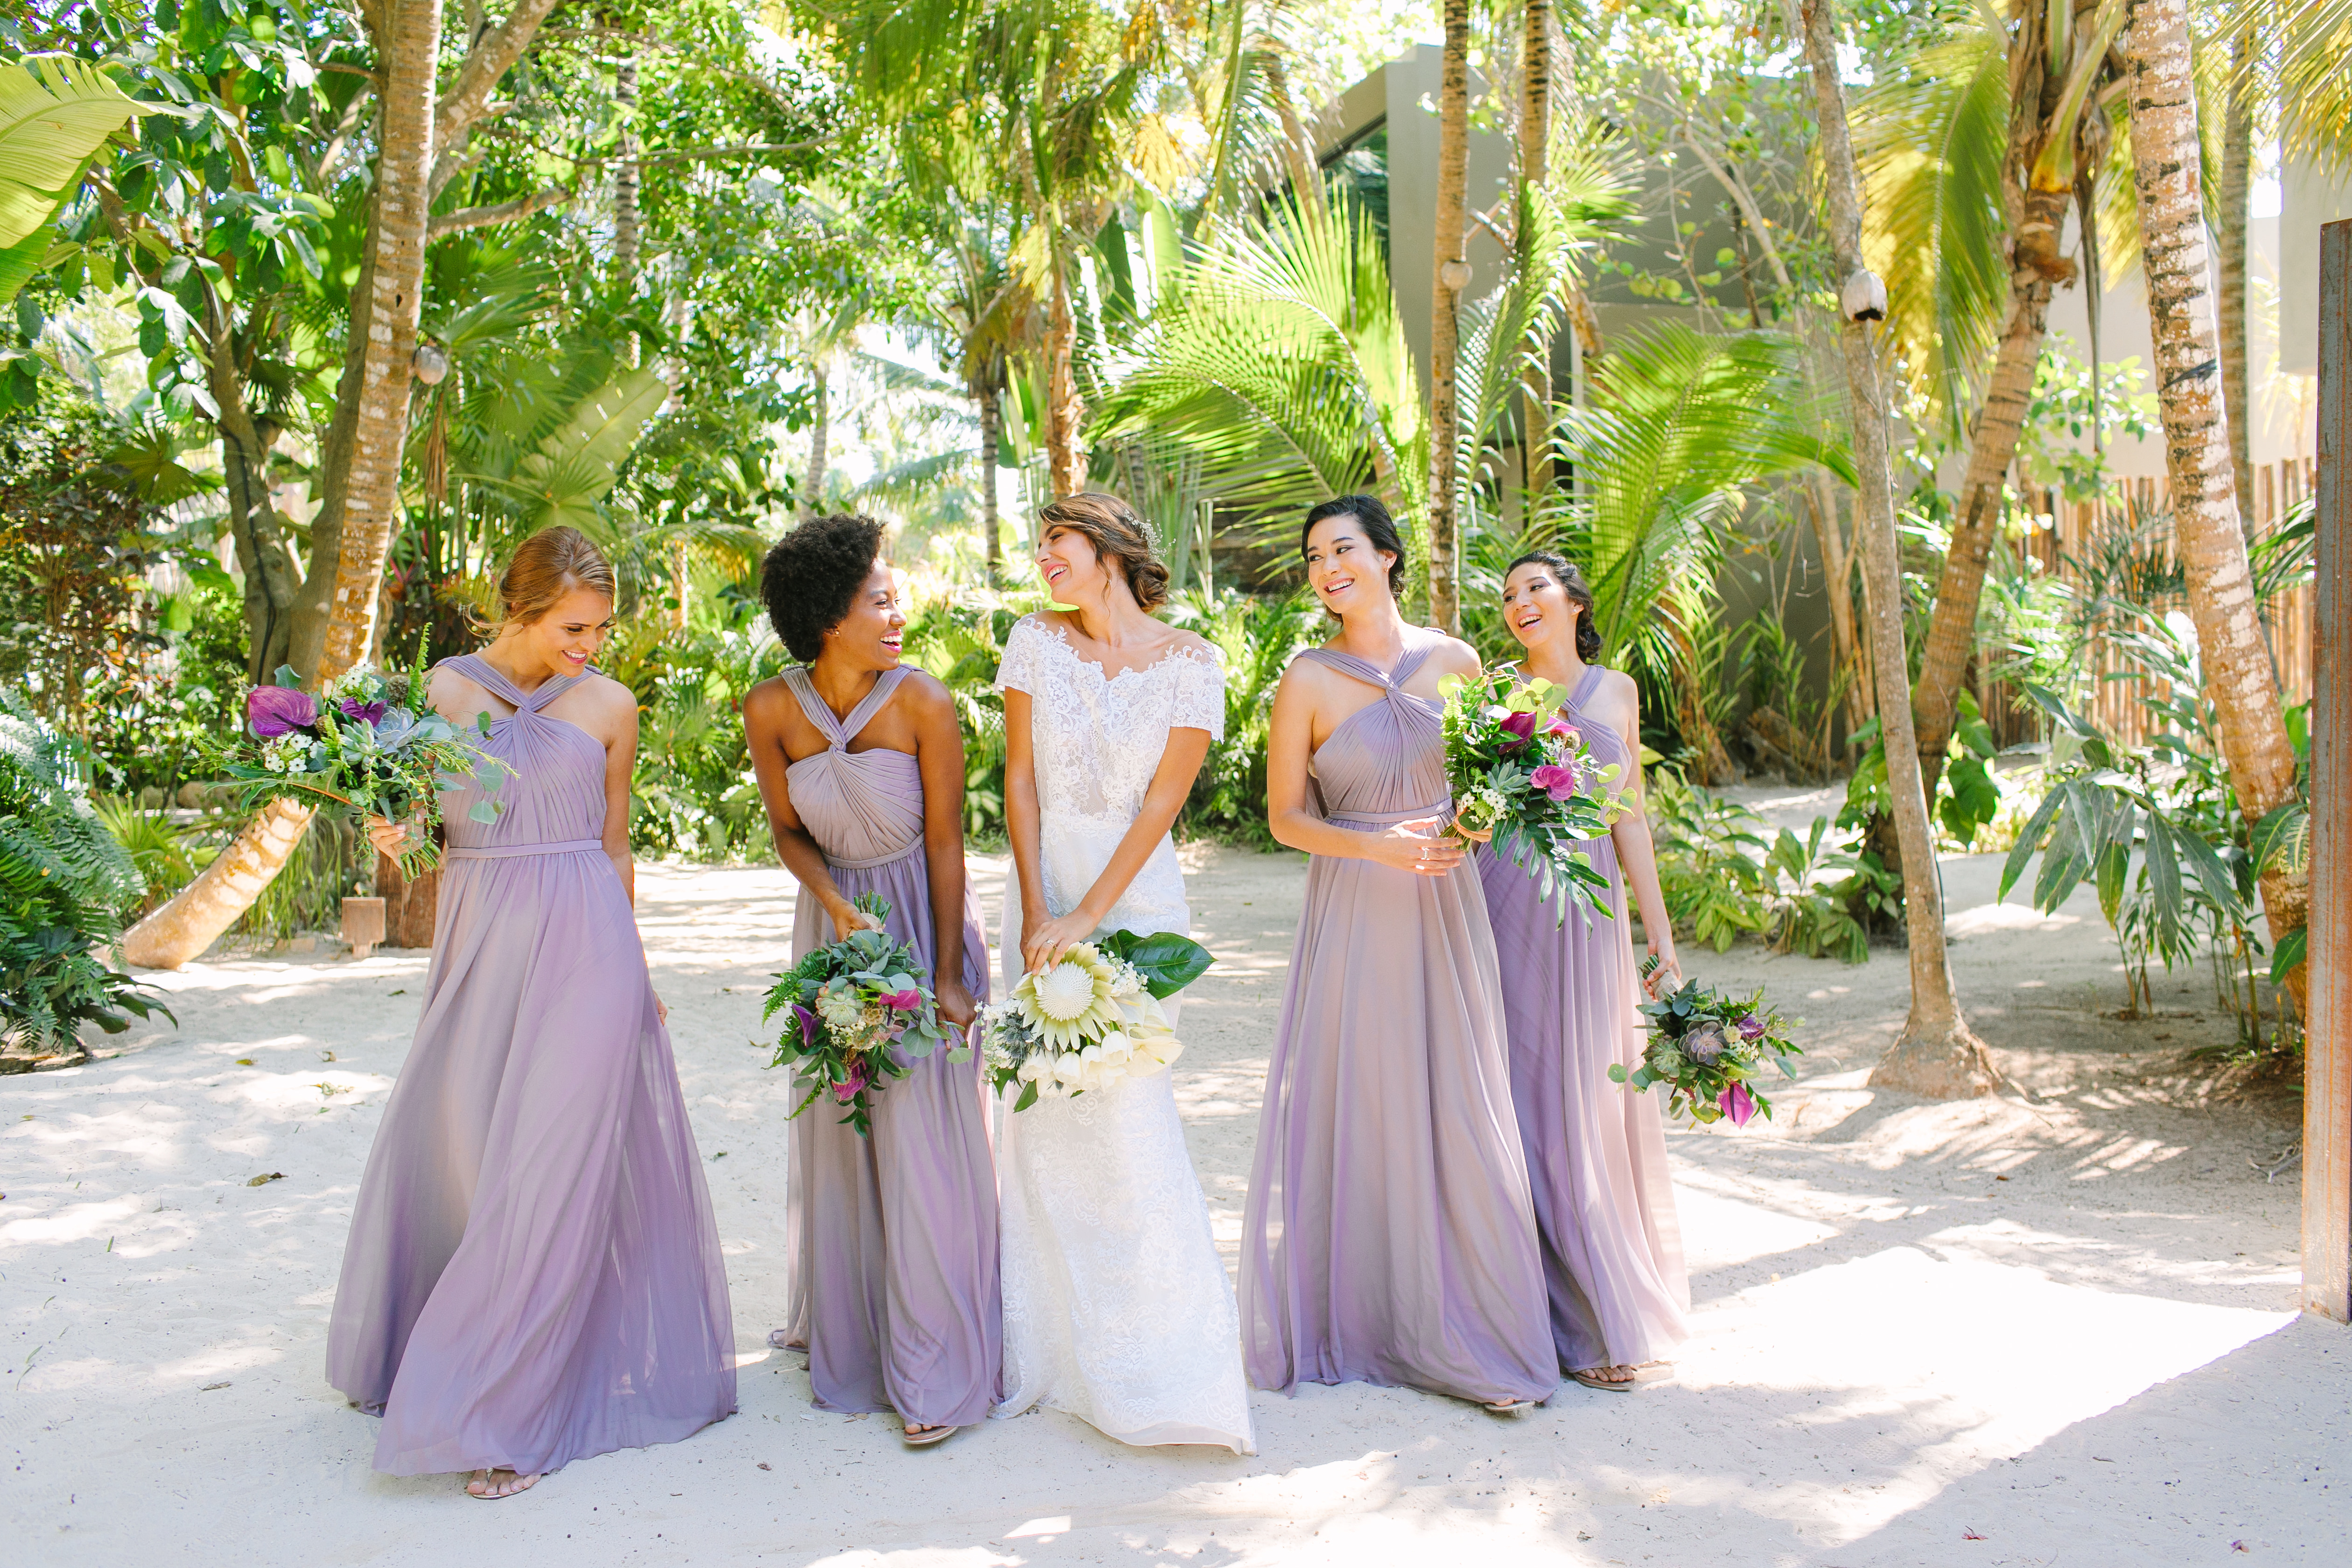 7 tips for wedding photos you'll love: We took Kleinfeld Bridal wedding dresses and Kleinfeld Bridal Party bridesmaids dresses to Tulum, Mexico for a fun photoshoot on the beach full of flowers, sun, sand and fun!